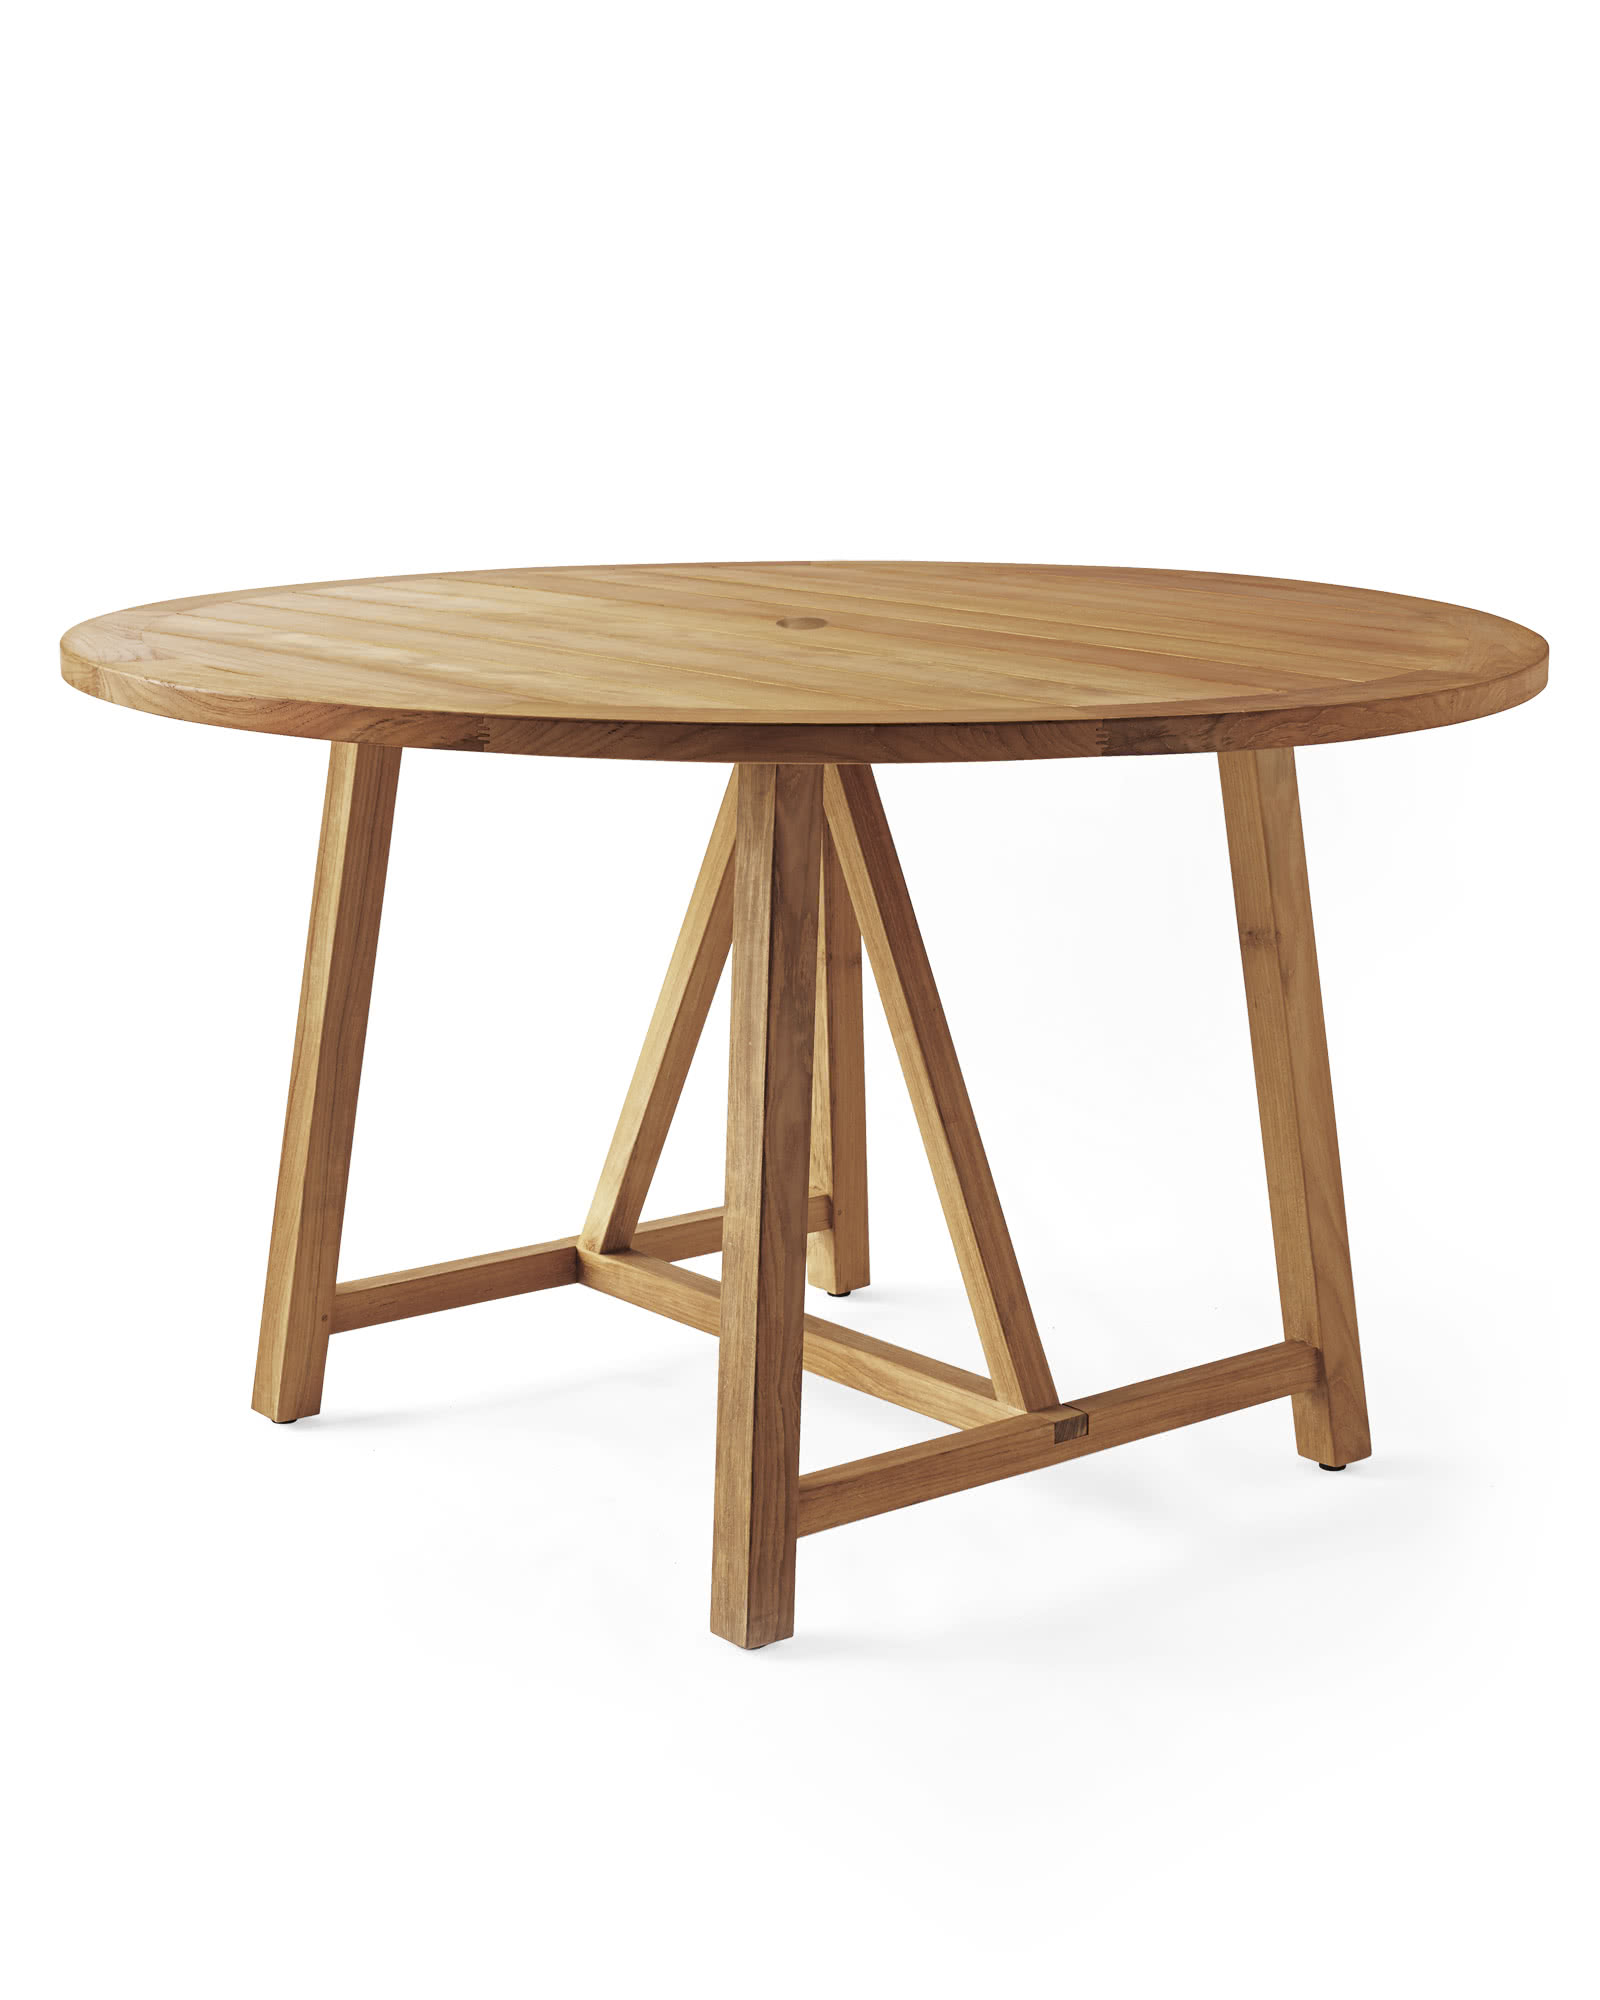 Crosby Teak Round Dining Table,